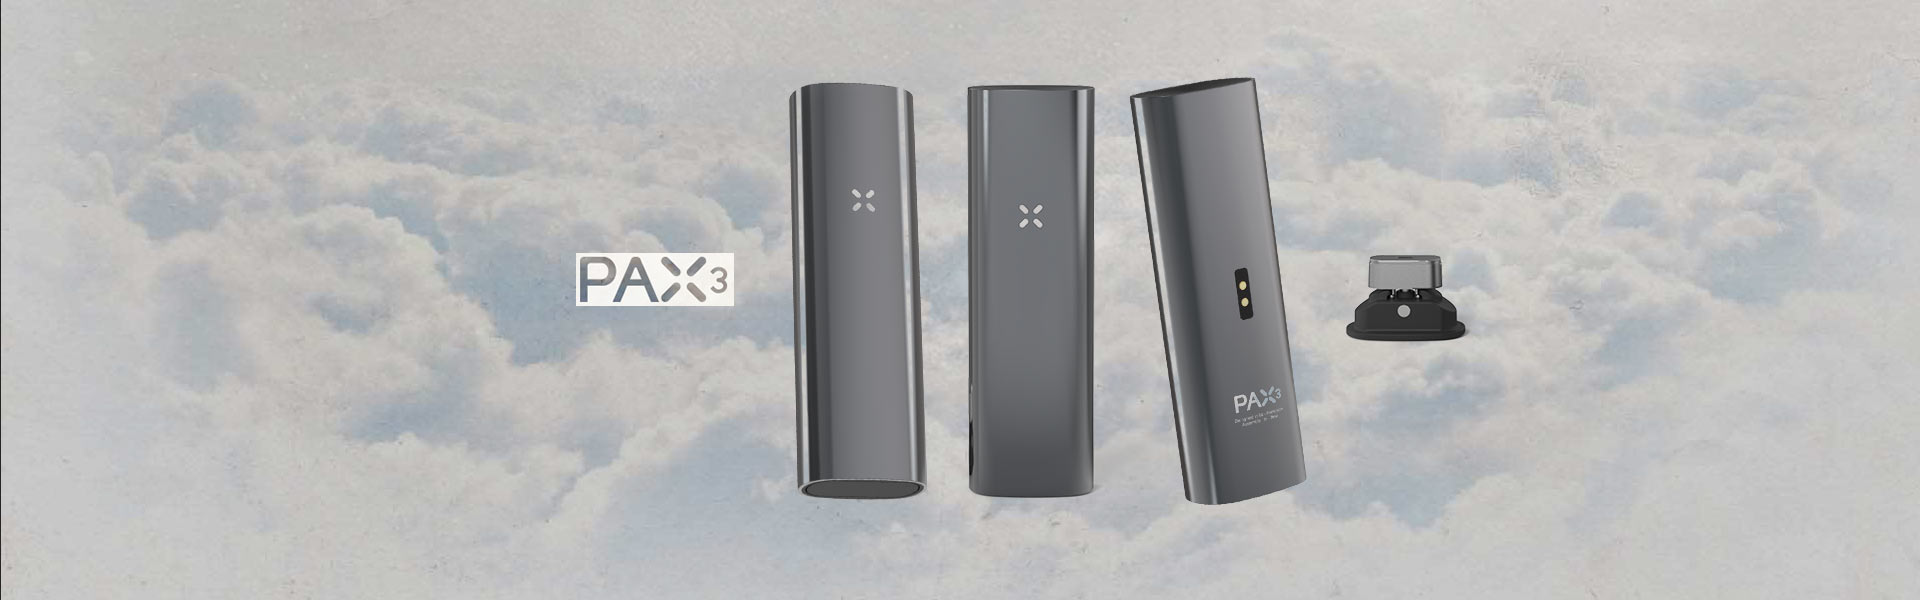 Pax 3 Vaporizer Review